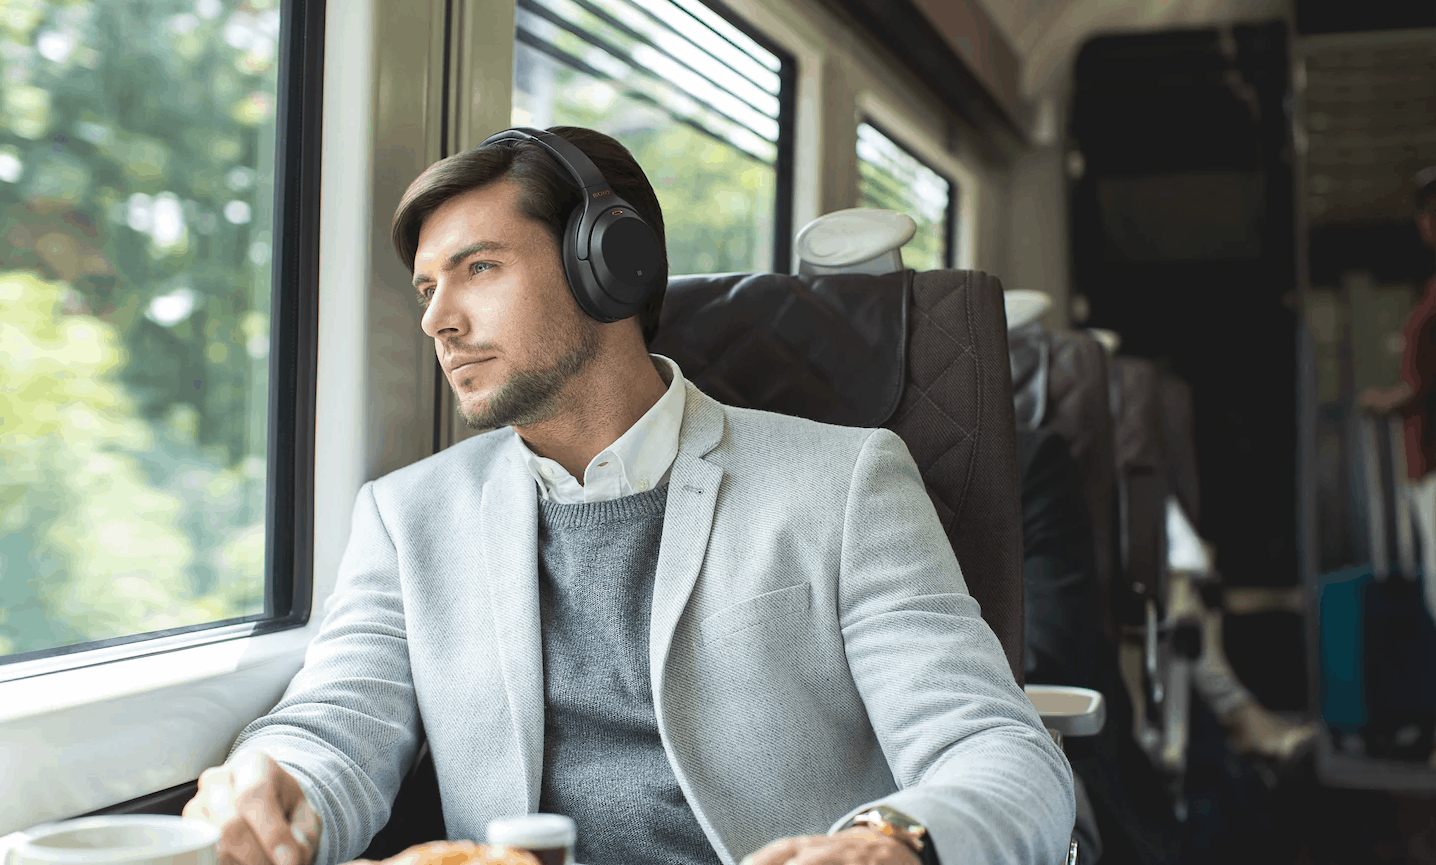 The best Bluetooth active noise-cancelling headphones to look out for on Black Friday 2019